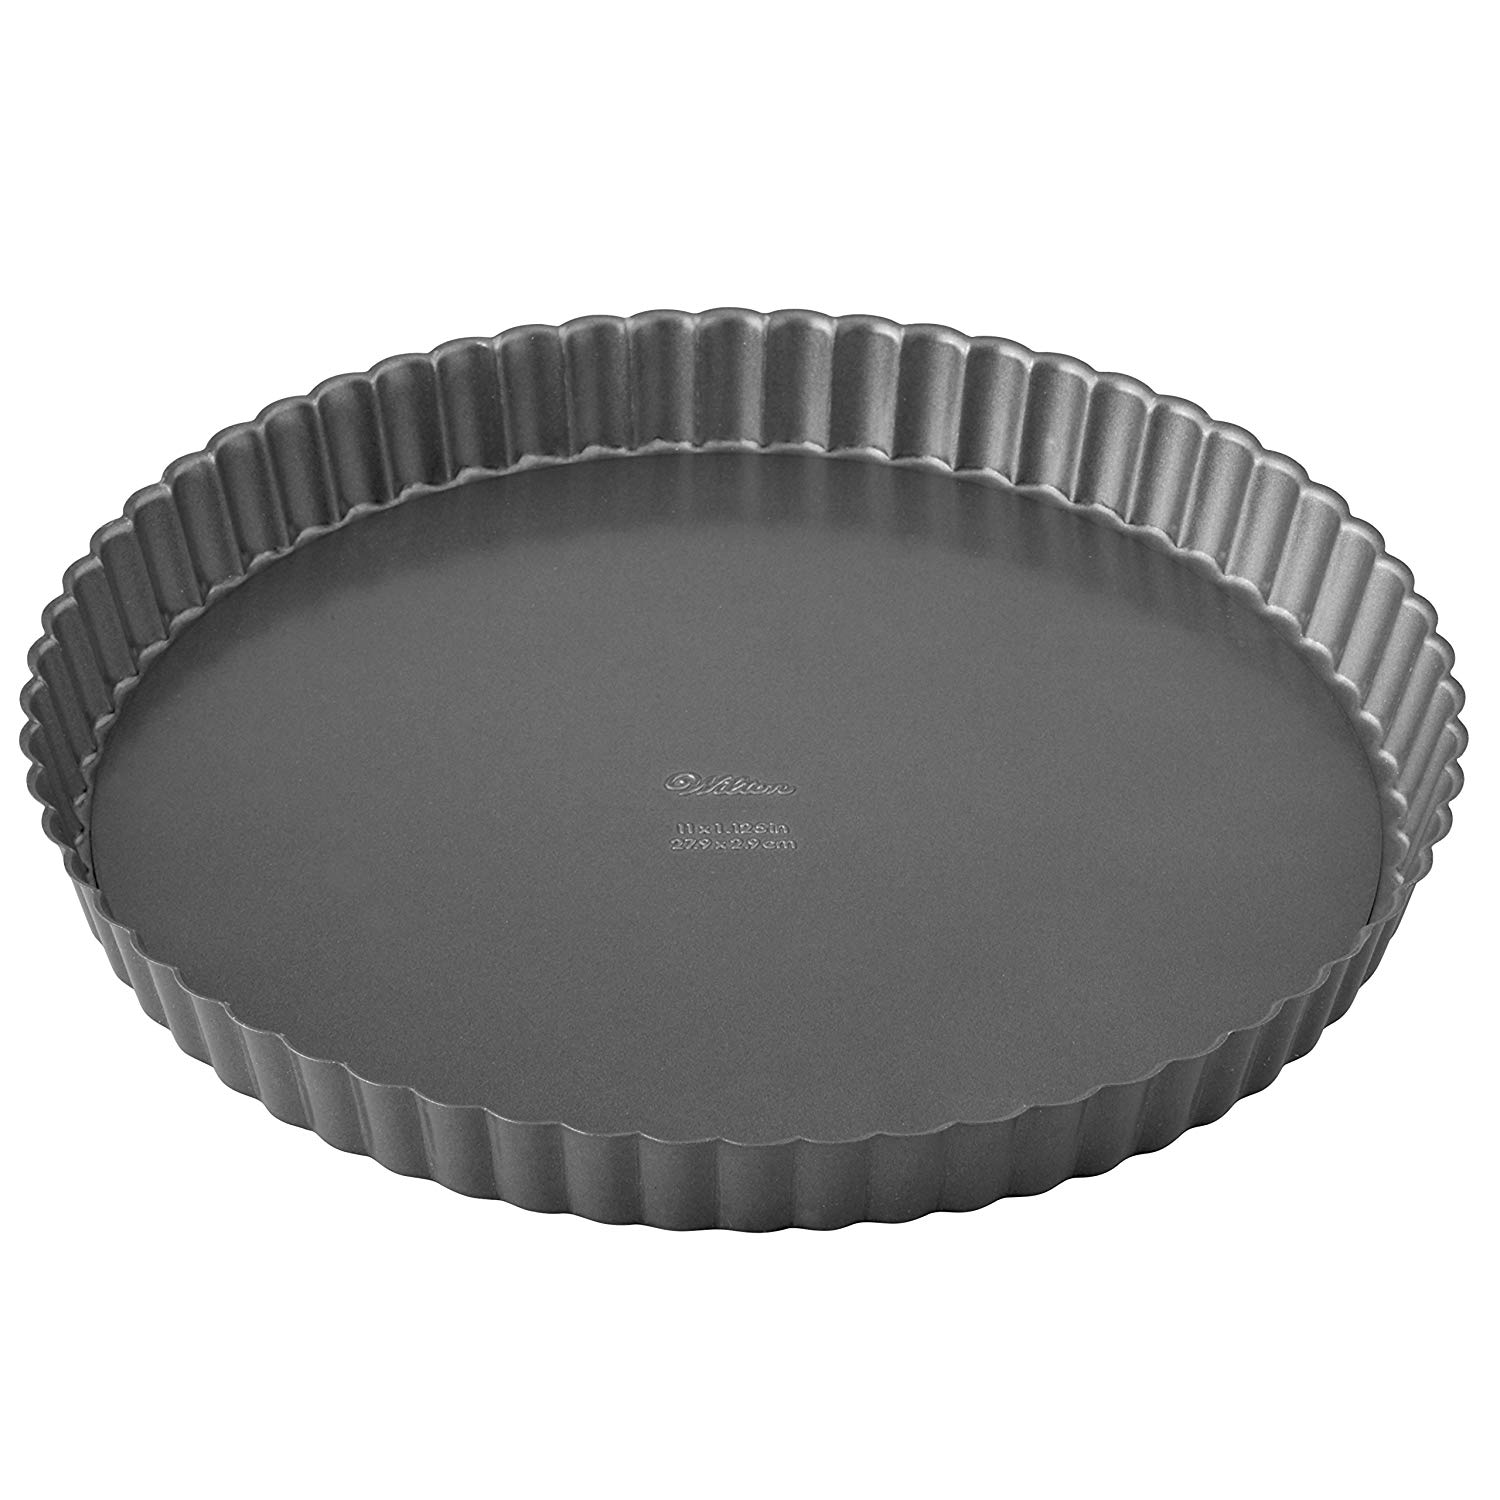 11-inch non-stick tart quiche pan (2105-450), by wilton